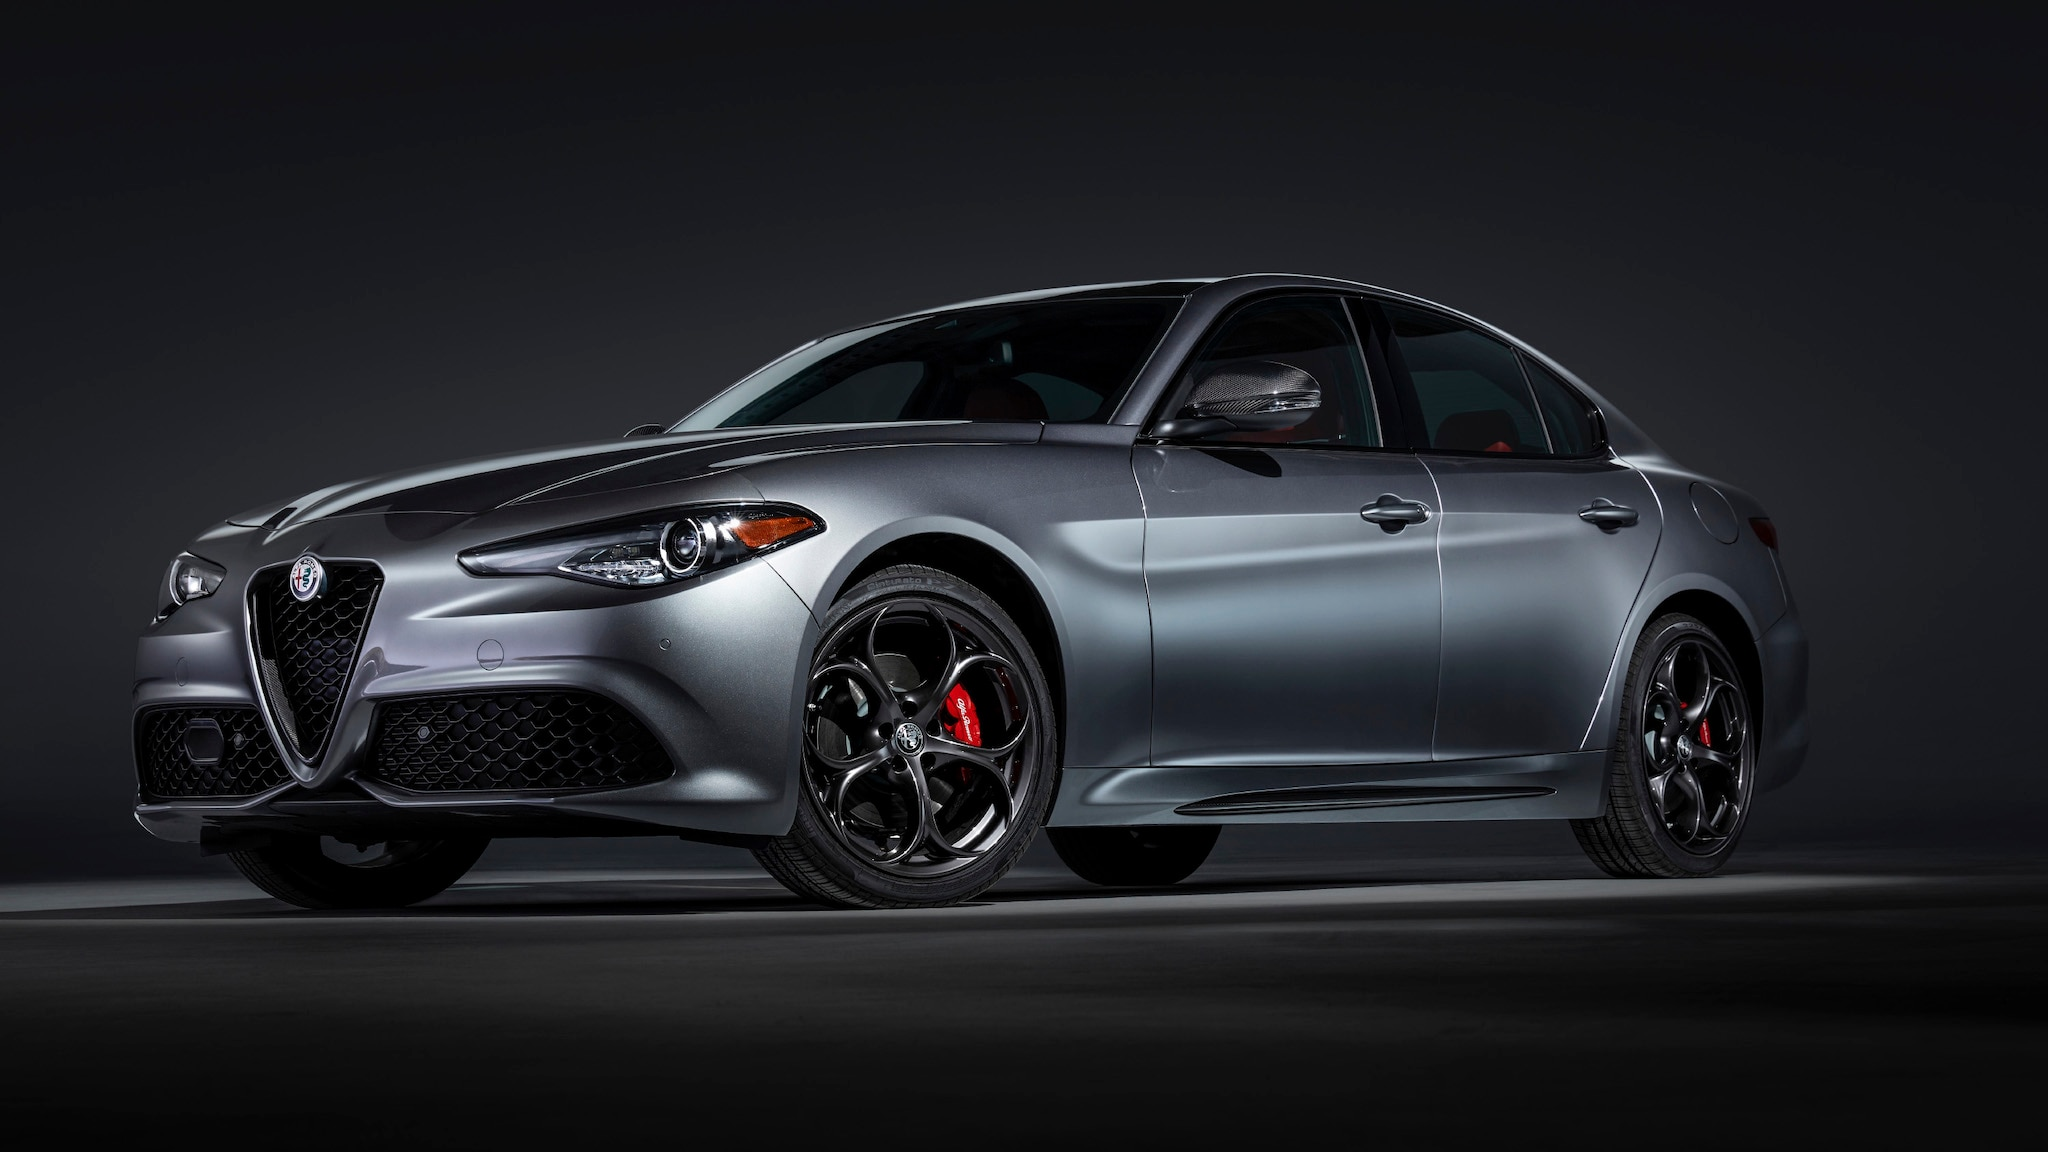 2020 Alfa Romeo Giulia Gets Better Interior Materials + a Touchscreen | Automobile